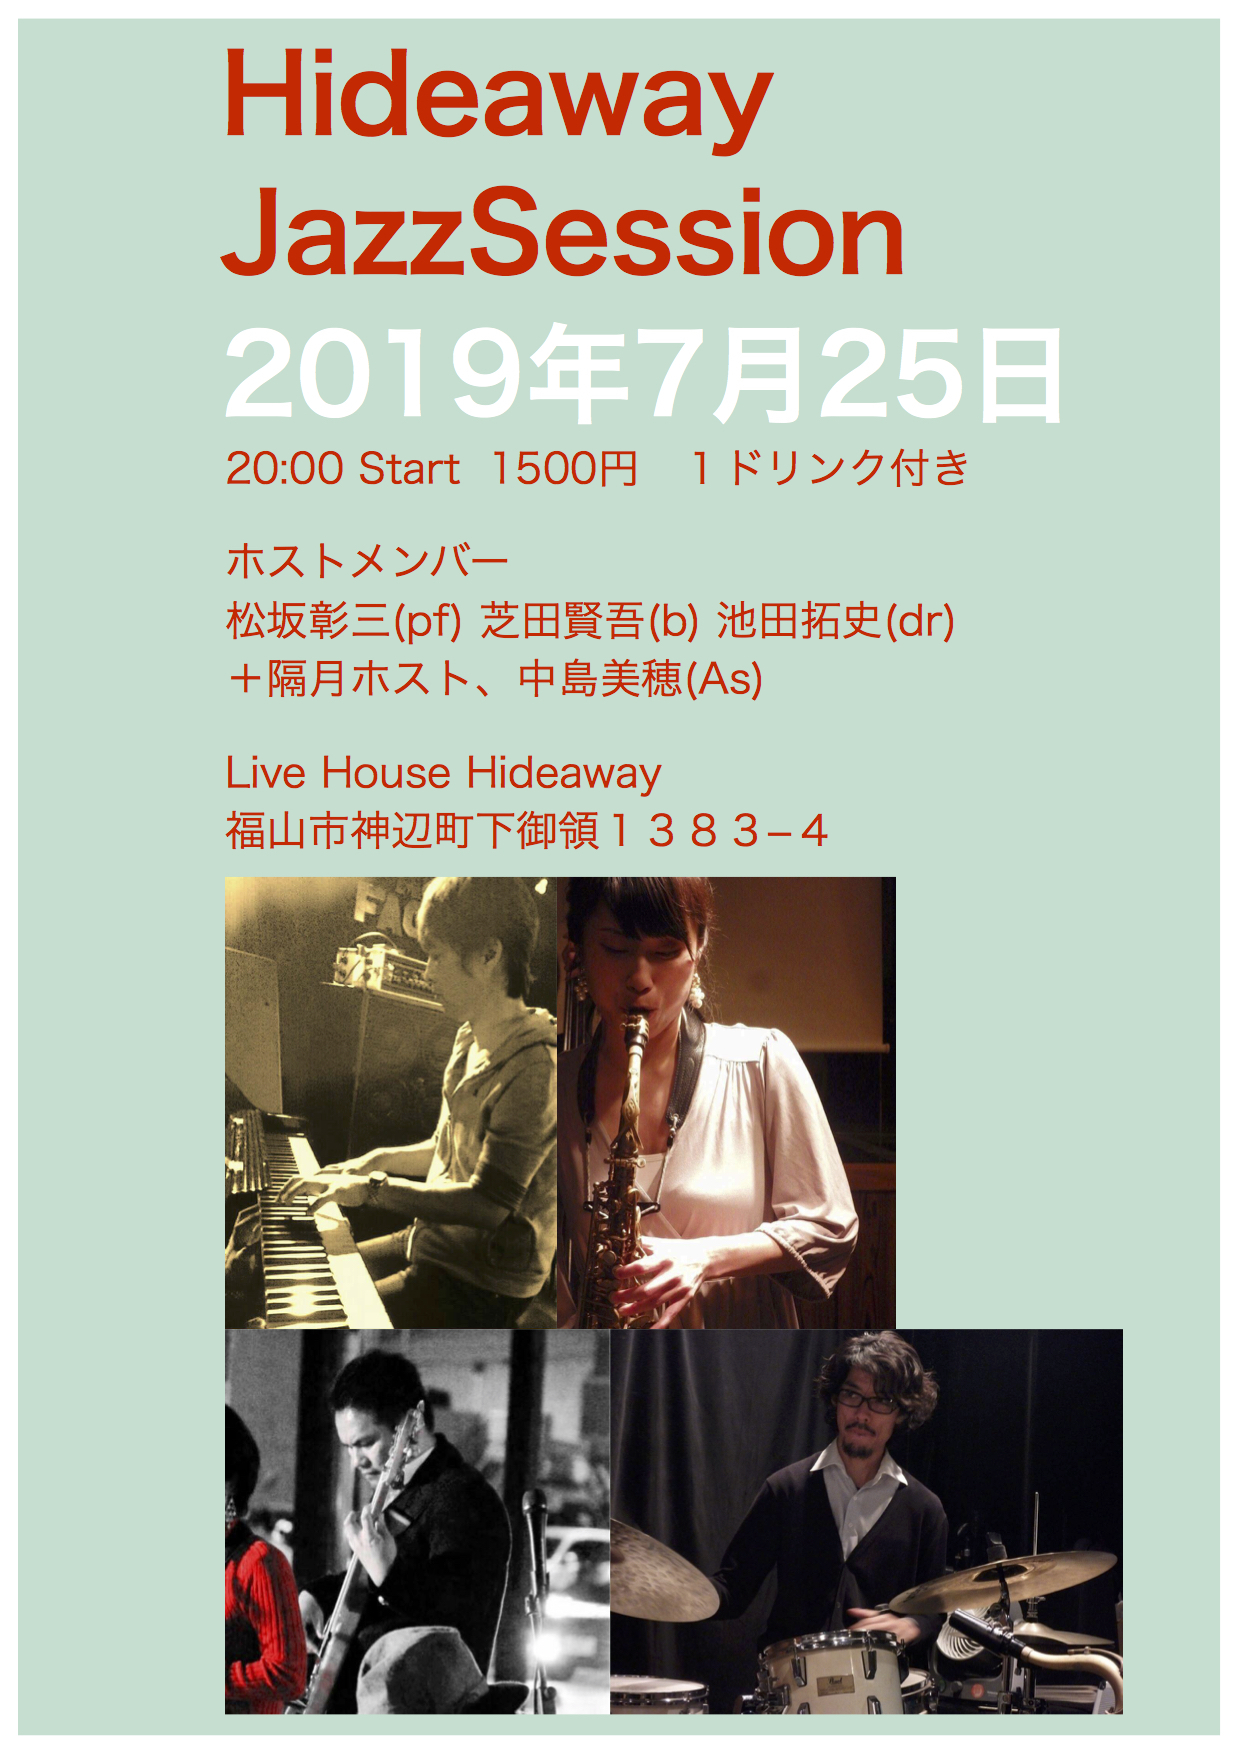 newsession20190725.jpg